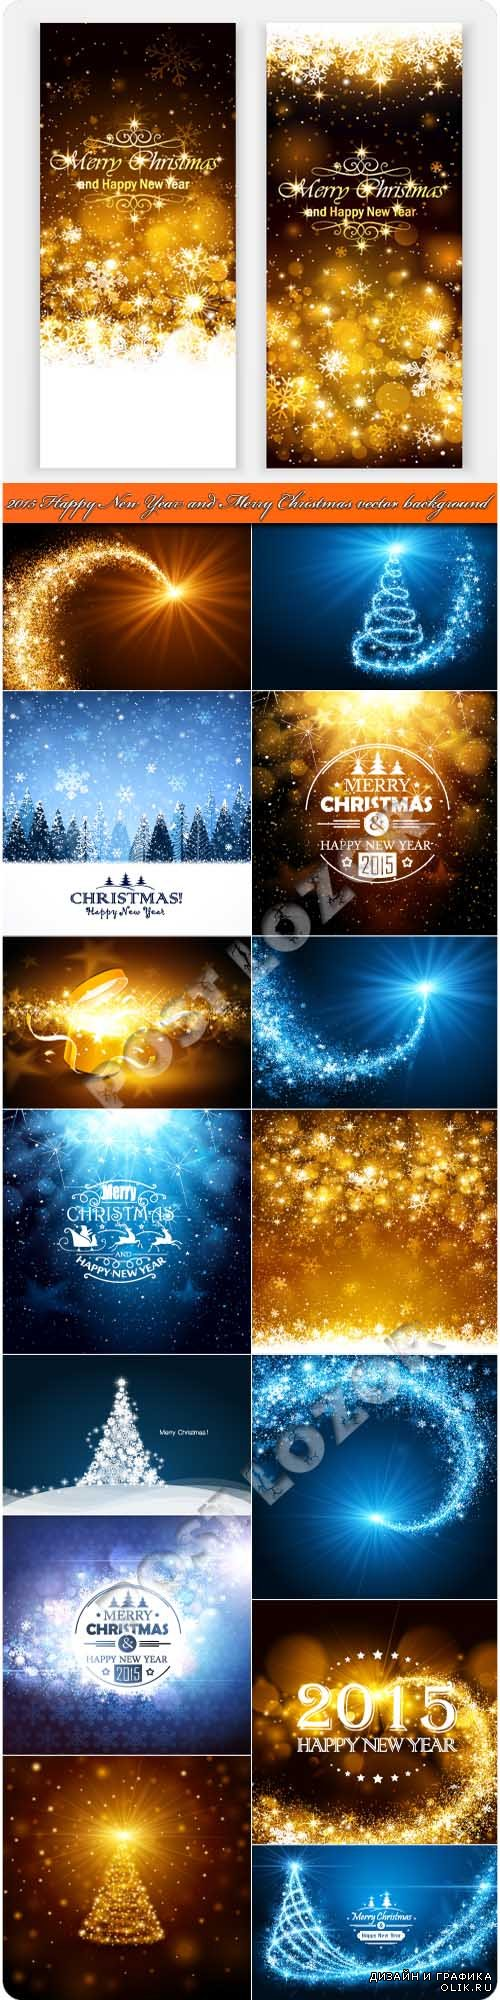 2015 Happy New Year and Merry Christmas vector background